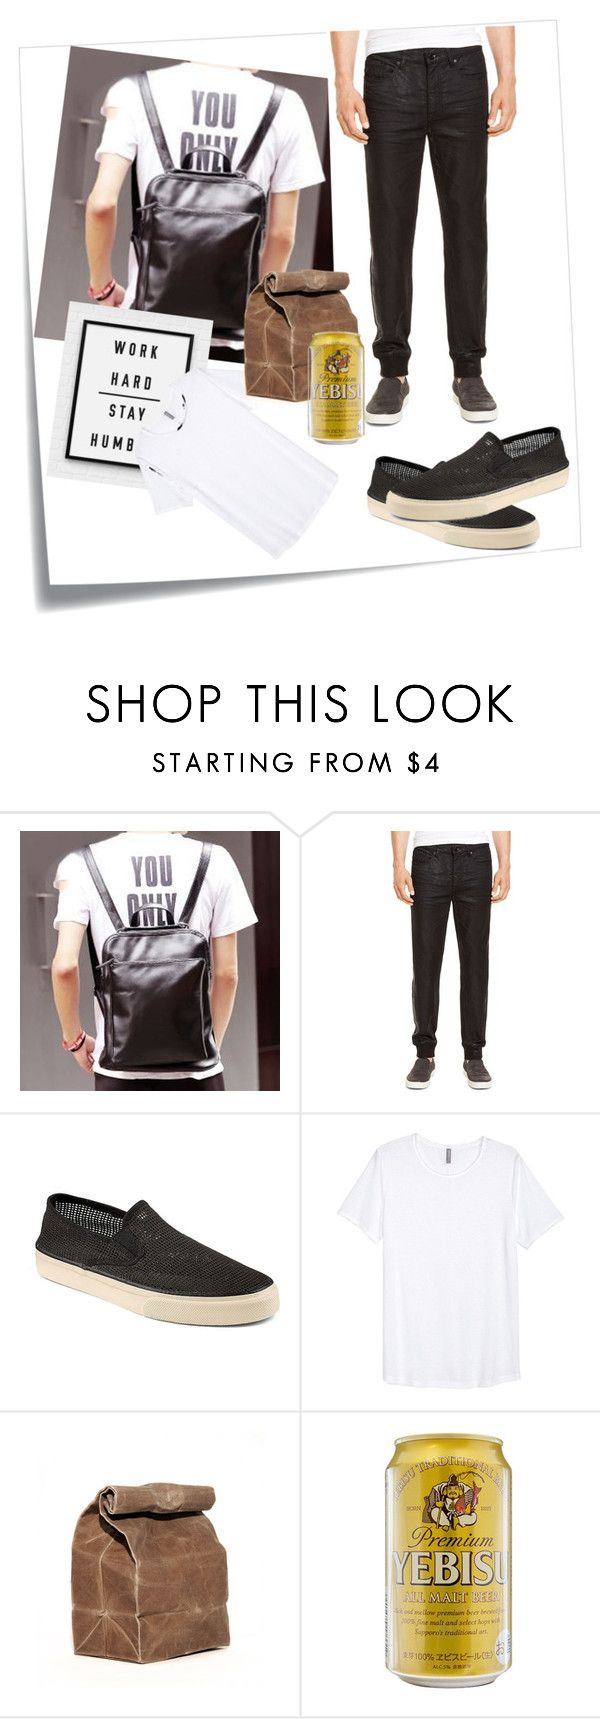 """Creative Ways to Save Money"" by widegren-rosa on Polyvore featuring Post-It, BagBuzz, Kenneth Cole, Sperry Top-Sider, mens, men, men's wear, mens wear, male and mens clothing"